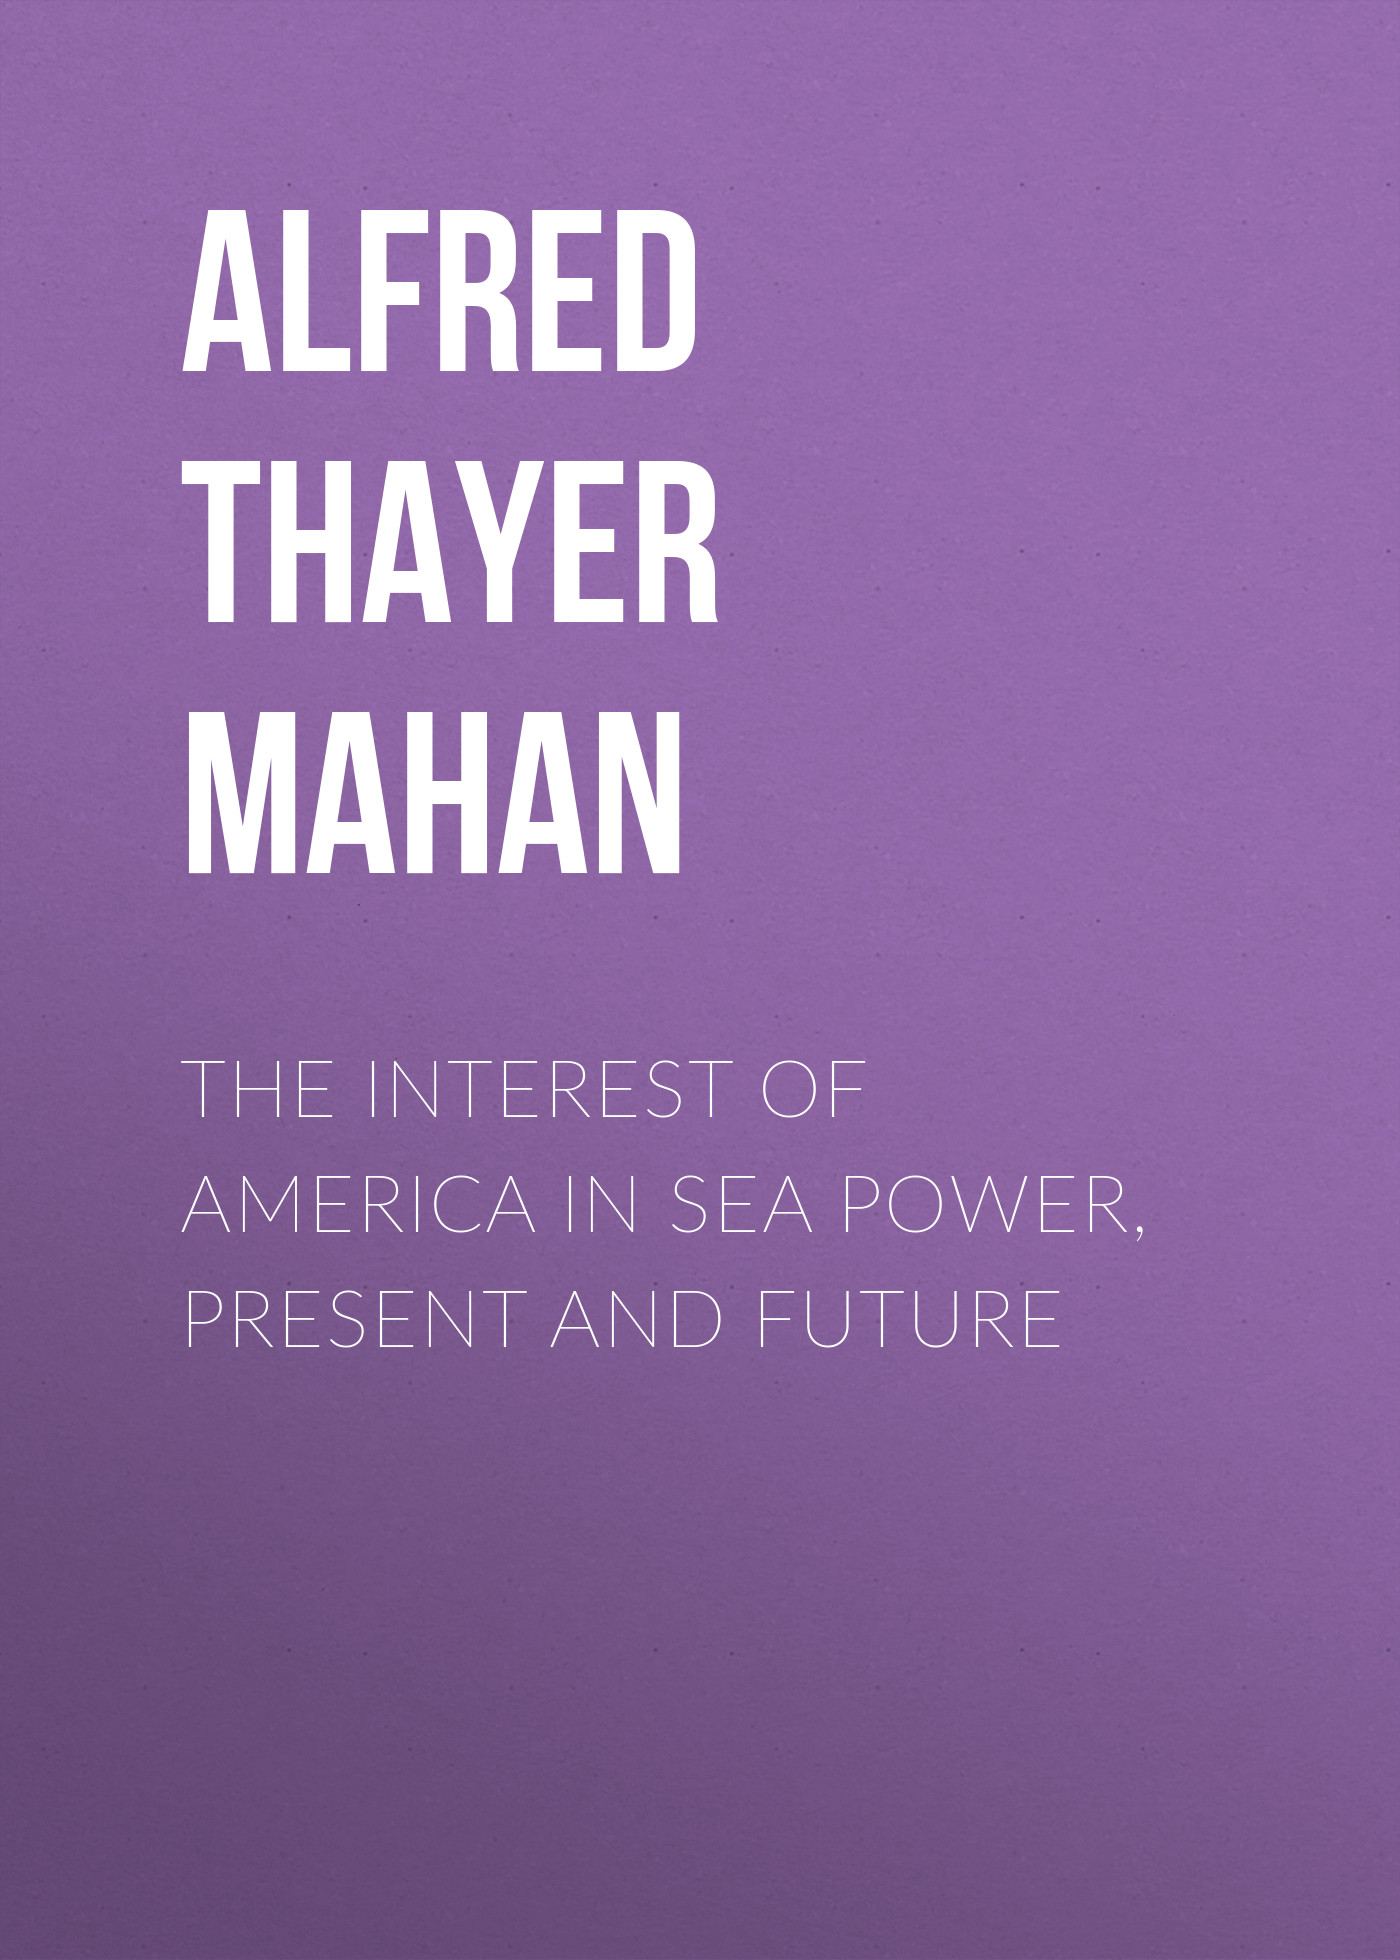 Alfred Thayer Mahan The Interest of America in Sea Power, Present and Future блендер centek ct 1310